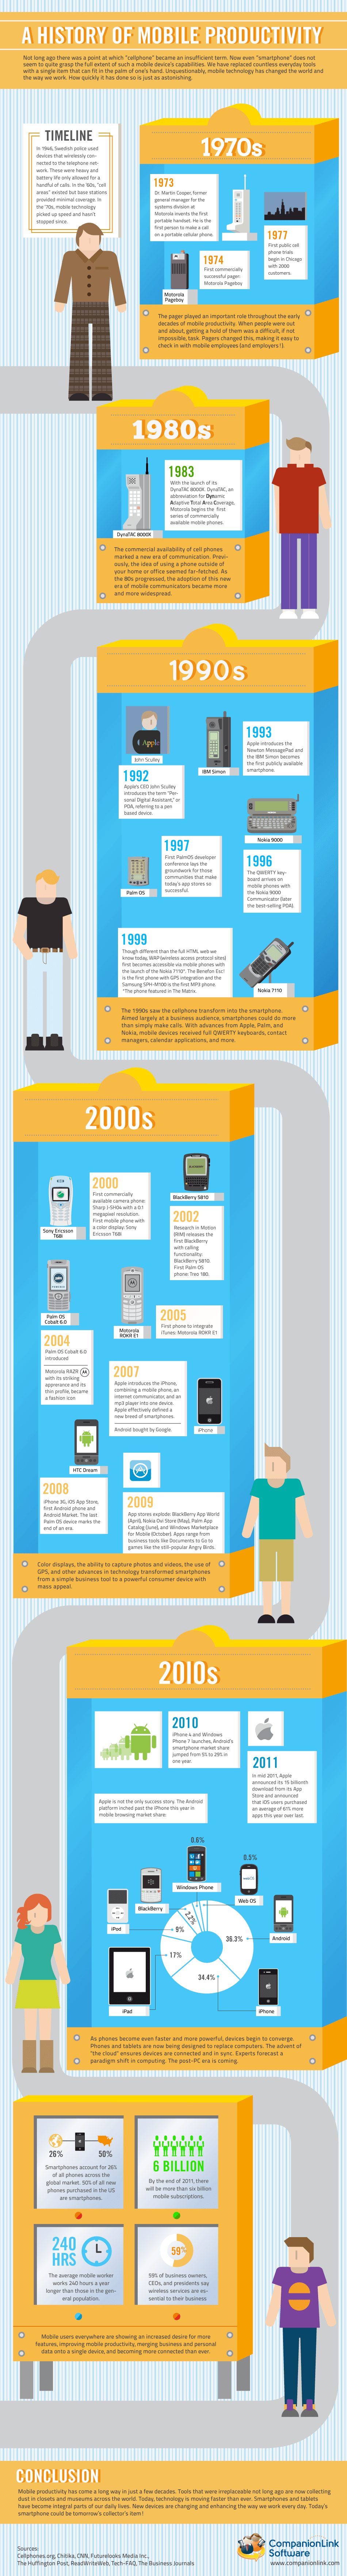 A History of Mobile Productivity